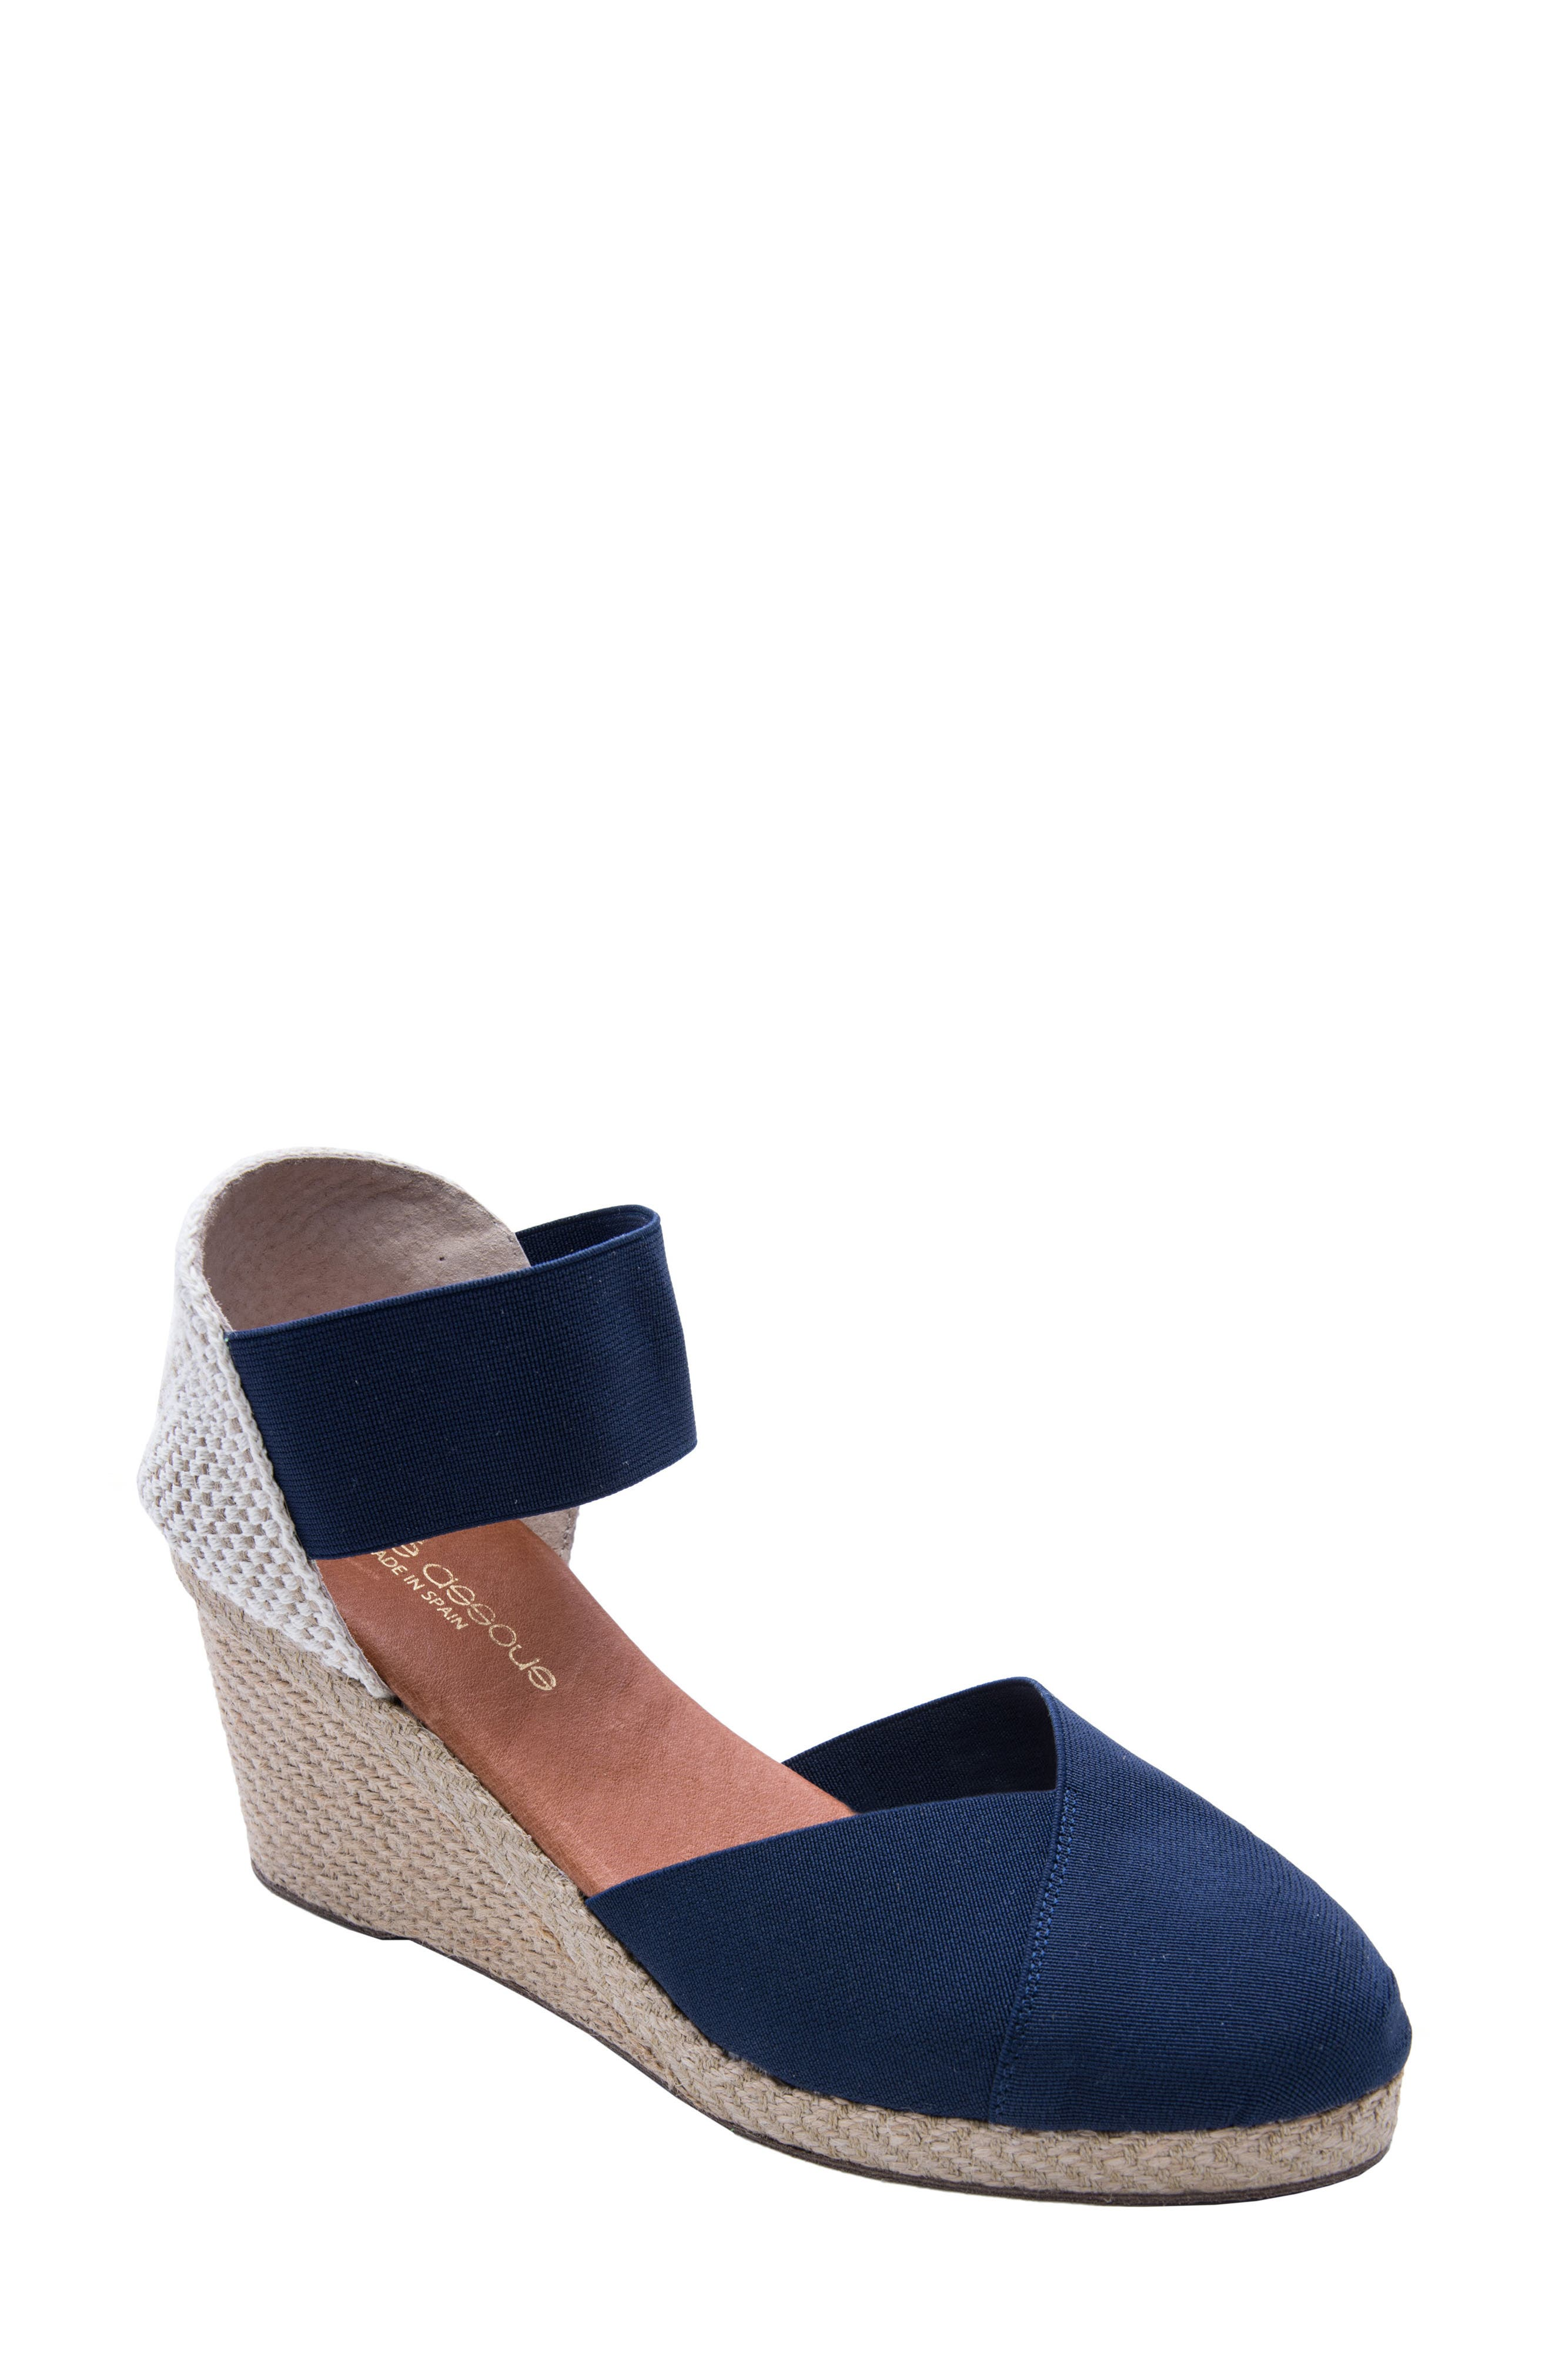 ANDRE ASSOUS Anouka Espadrille Wedge in Navy Fabric